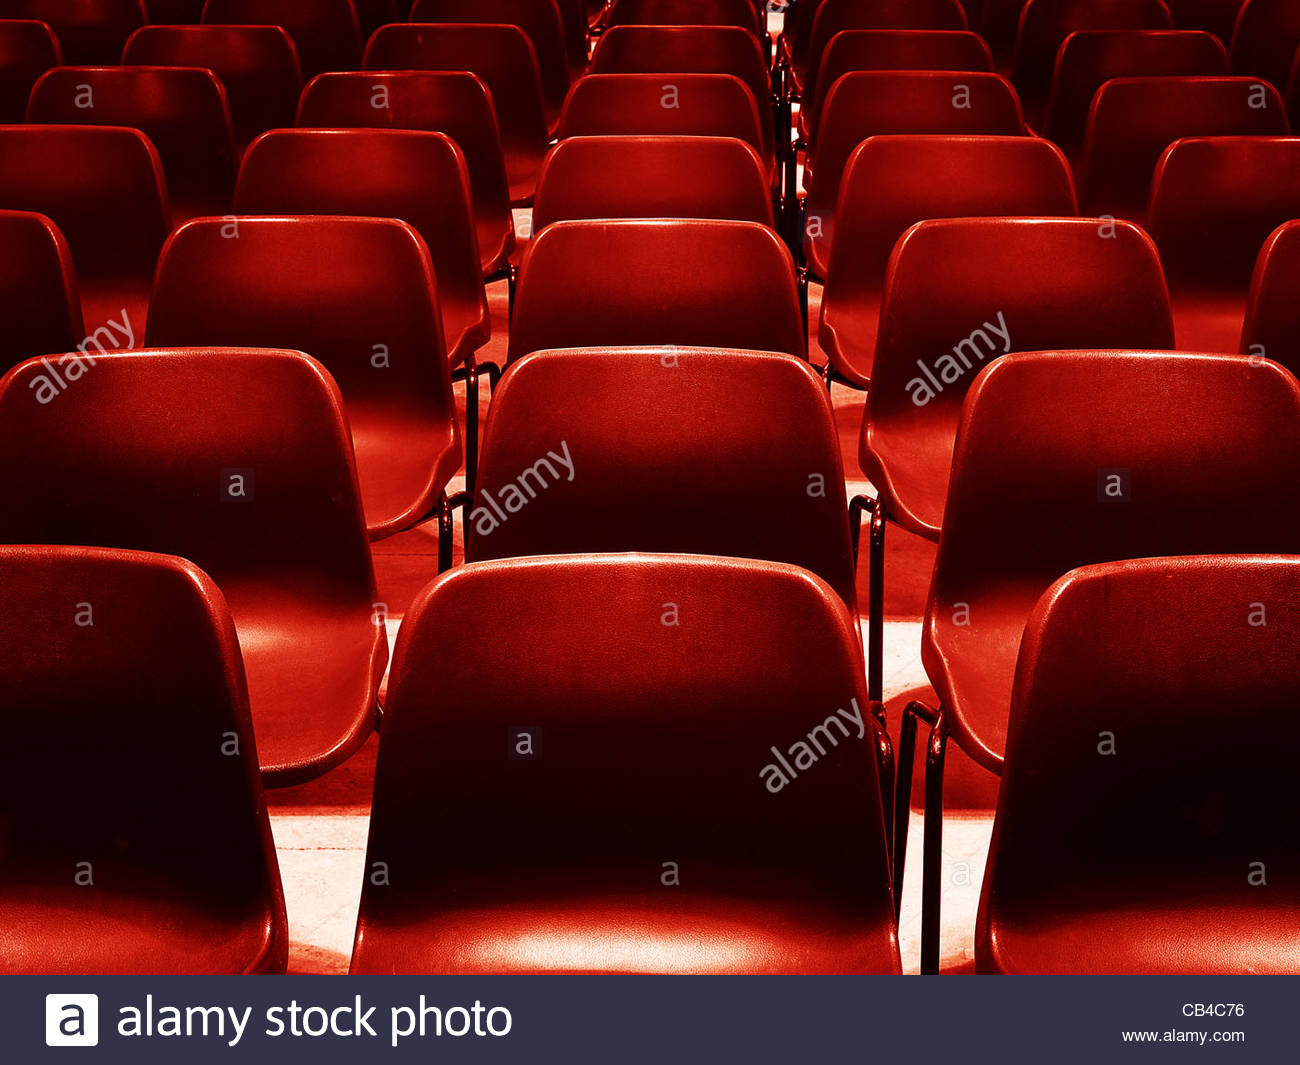 Rows of red chairs - Stock Image